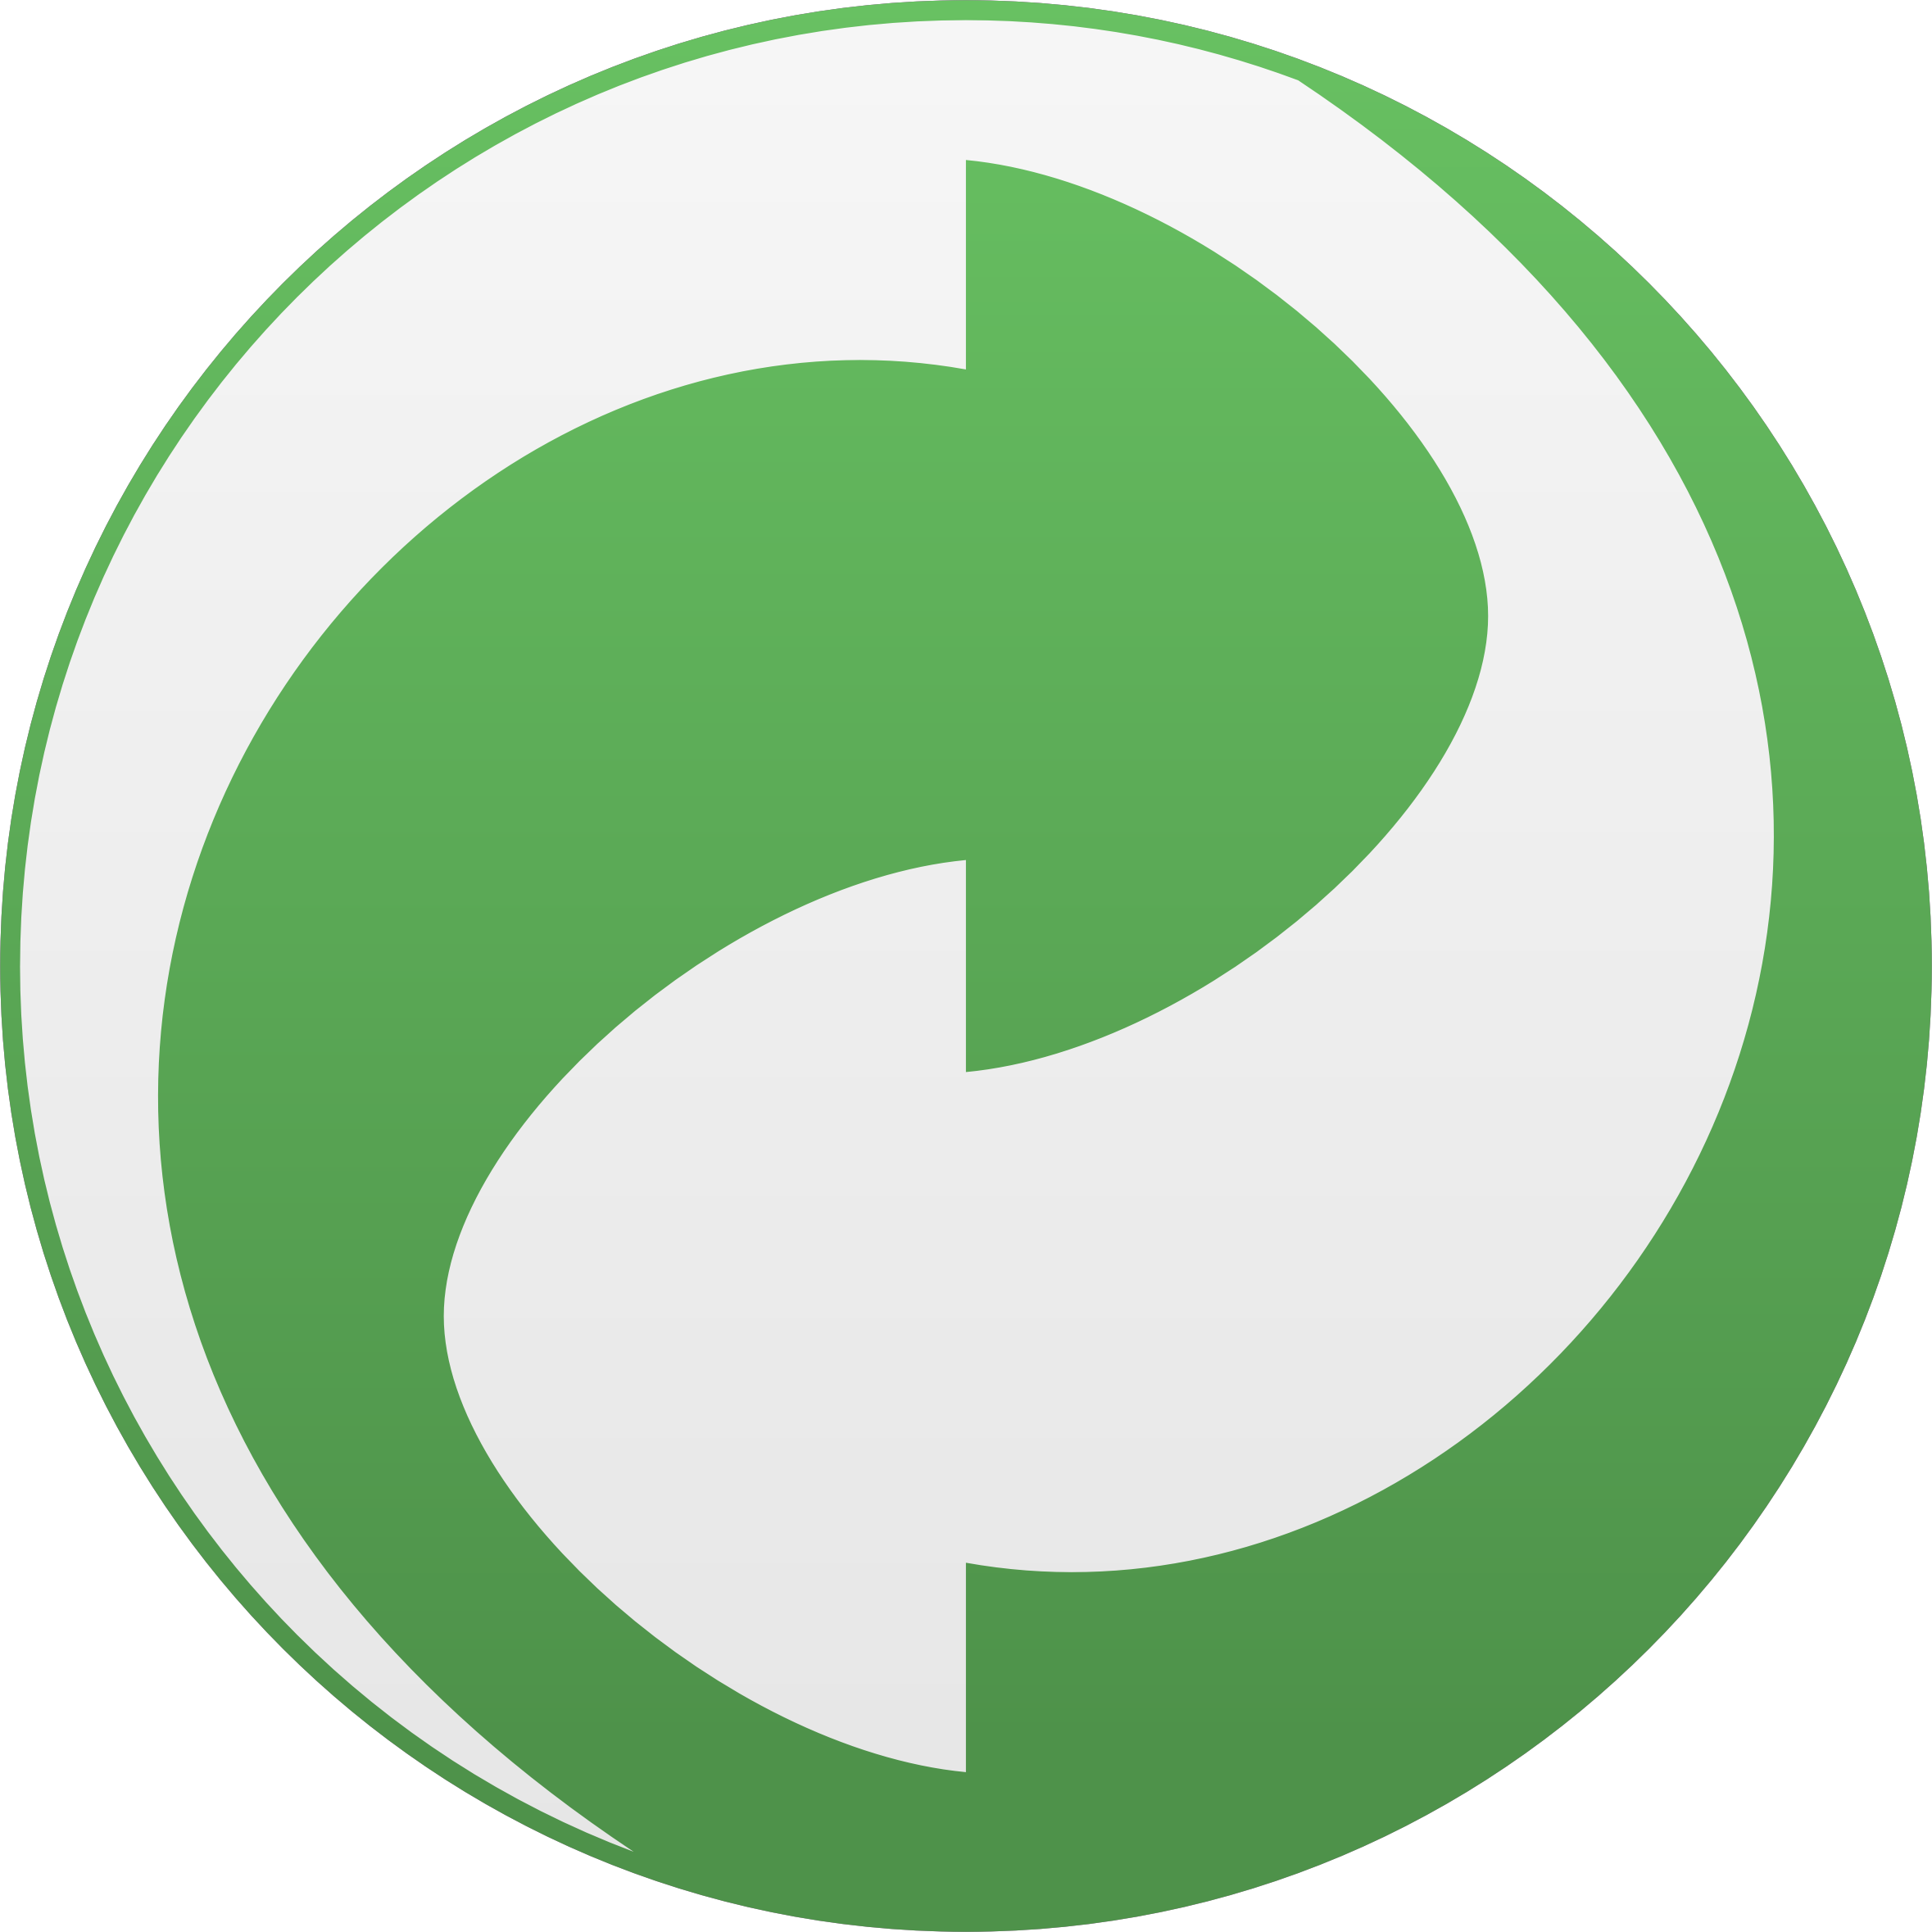 Recycling Symbol by GDJ